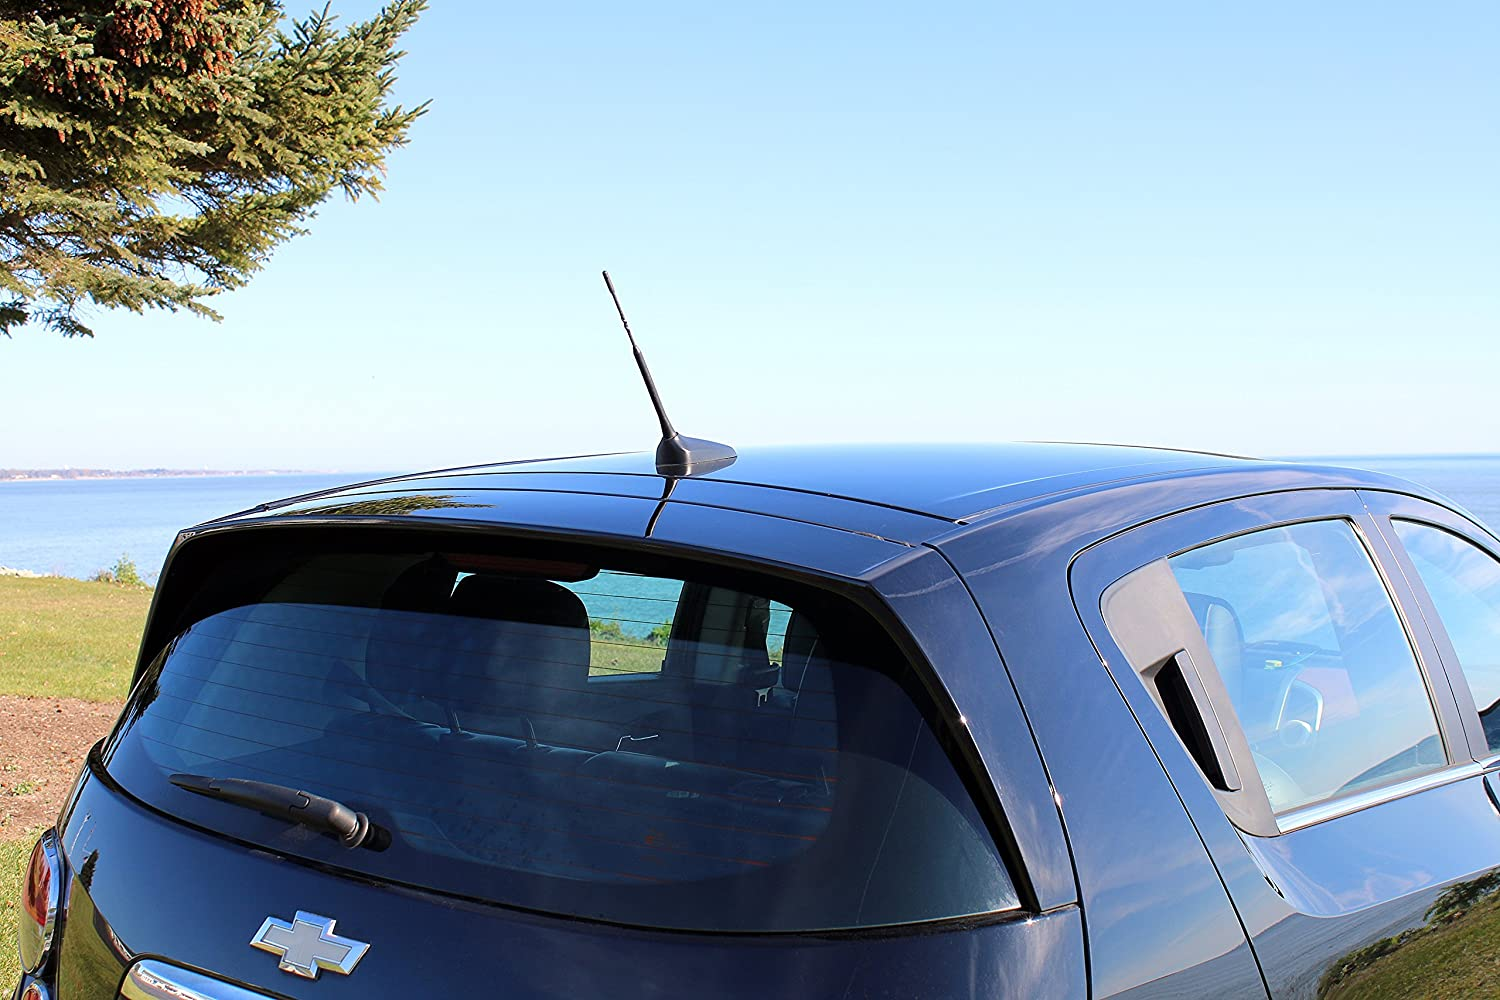 2009-2020 The Original 6 3//4 Inch is Compatible with Kia Rio - Car Wash Proof Short Rubber Antenna AntennaMastsRus Internal Copper Coil German Engineered Premium Reception